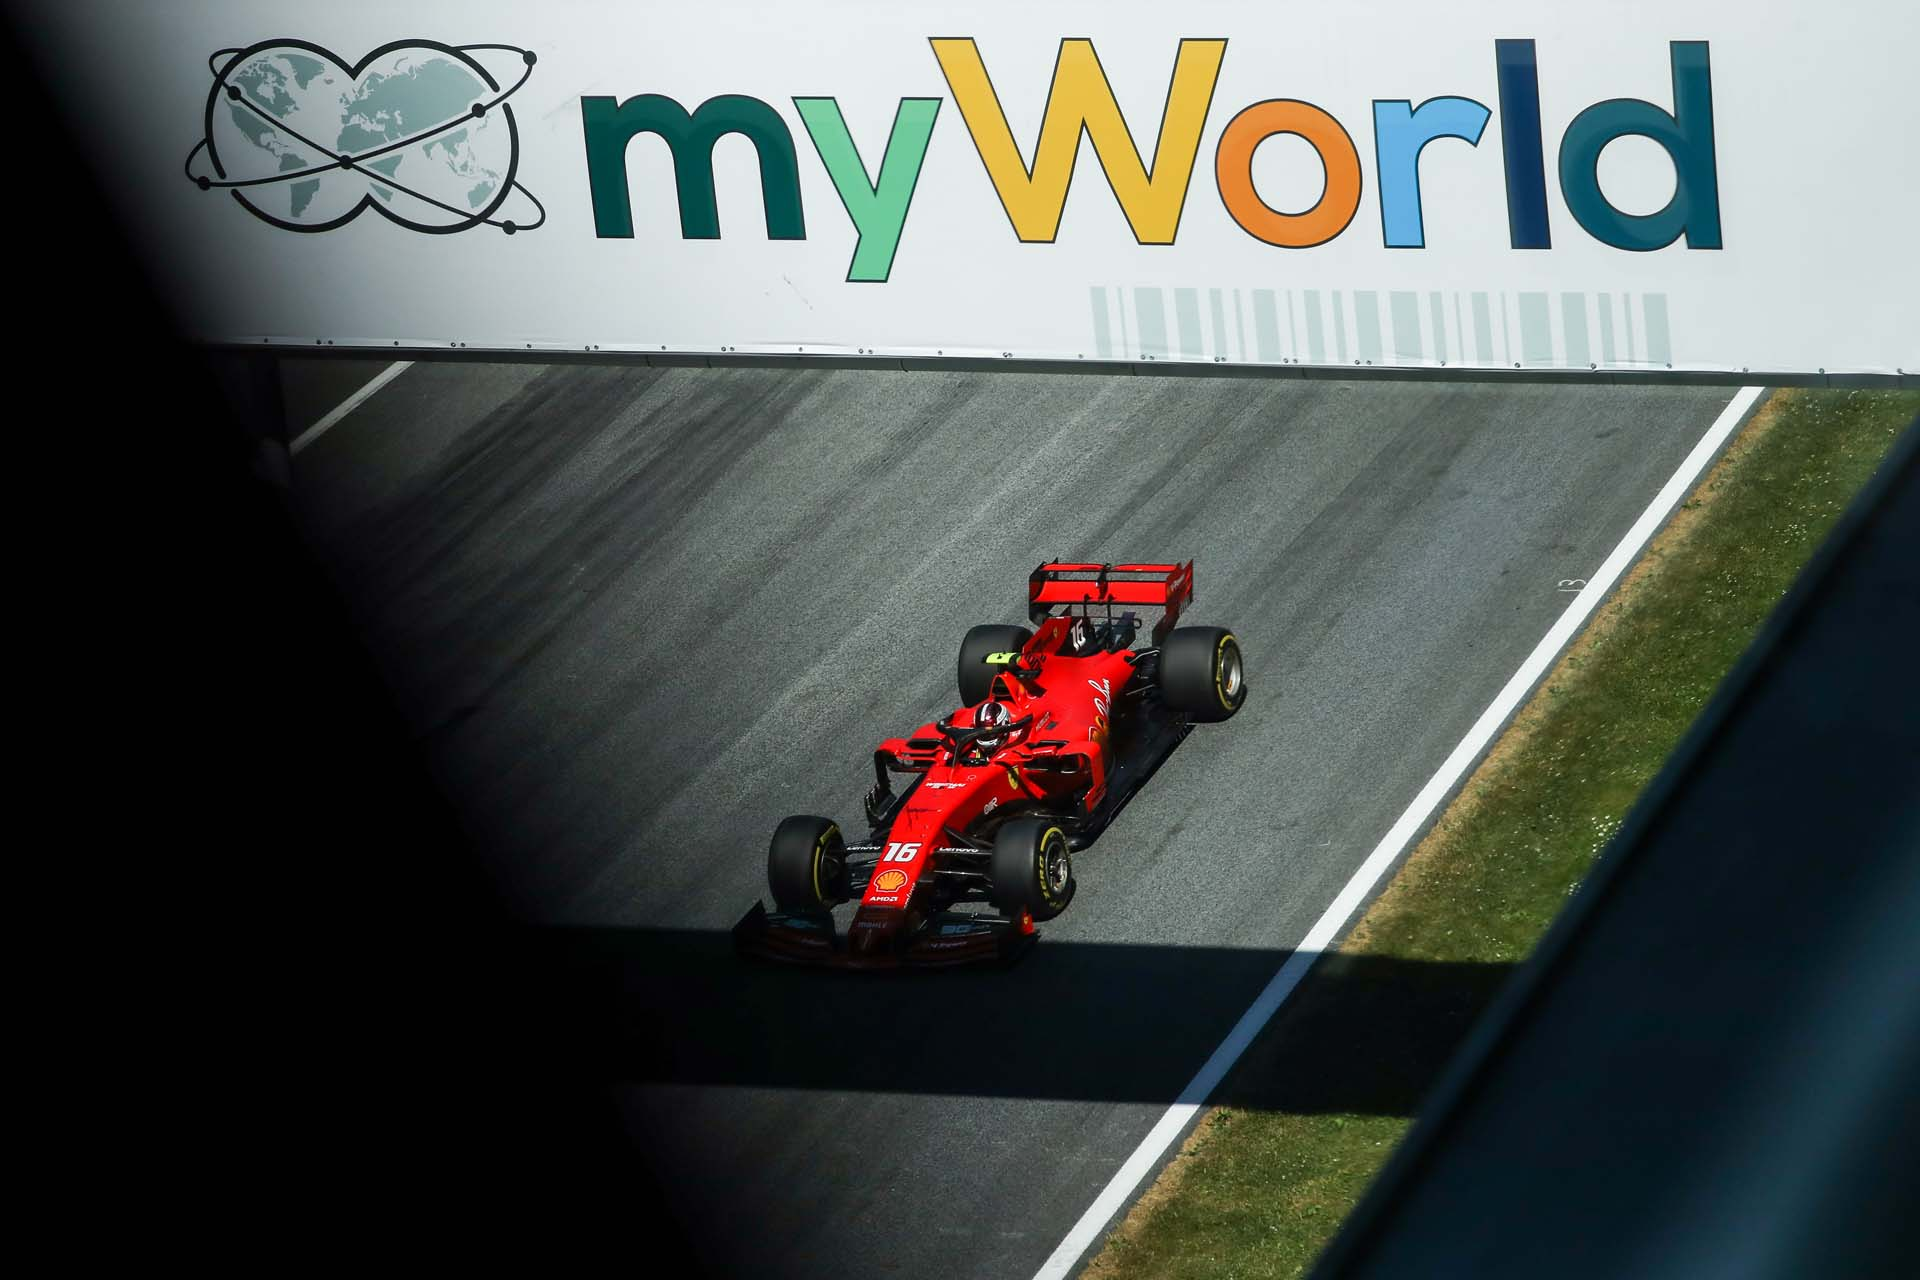 SPIELBERG,AUSTRIA,29.JUN.19 - MOTORSPORTS, FORMULA 1 - Grand Prix of Austria, Red Bull Ring, qualification. Image shows Charles Leclerc (MON/ Ferrari). Photo: GEPA pictures/ Daniel Goetzhaber - For editorial use only. Image is free of charge.